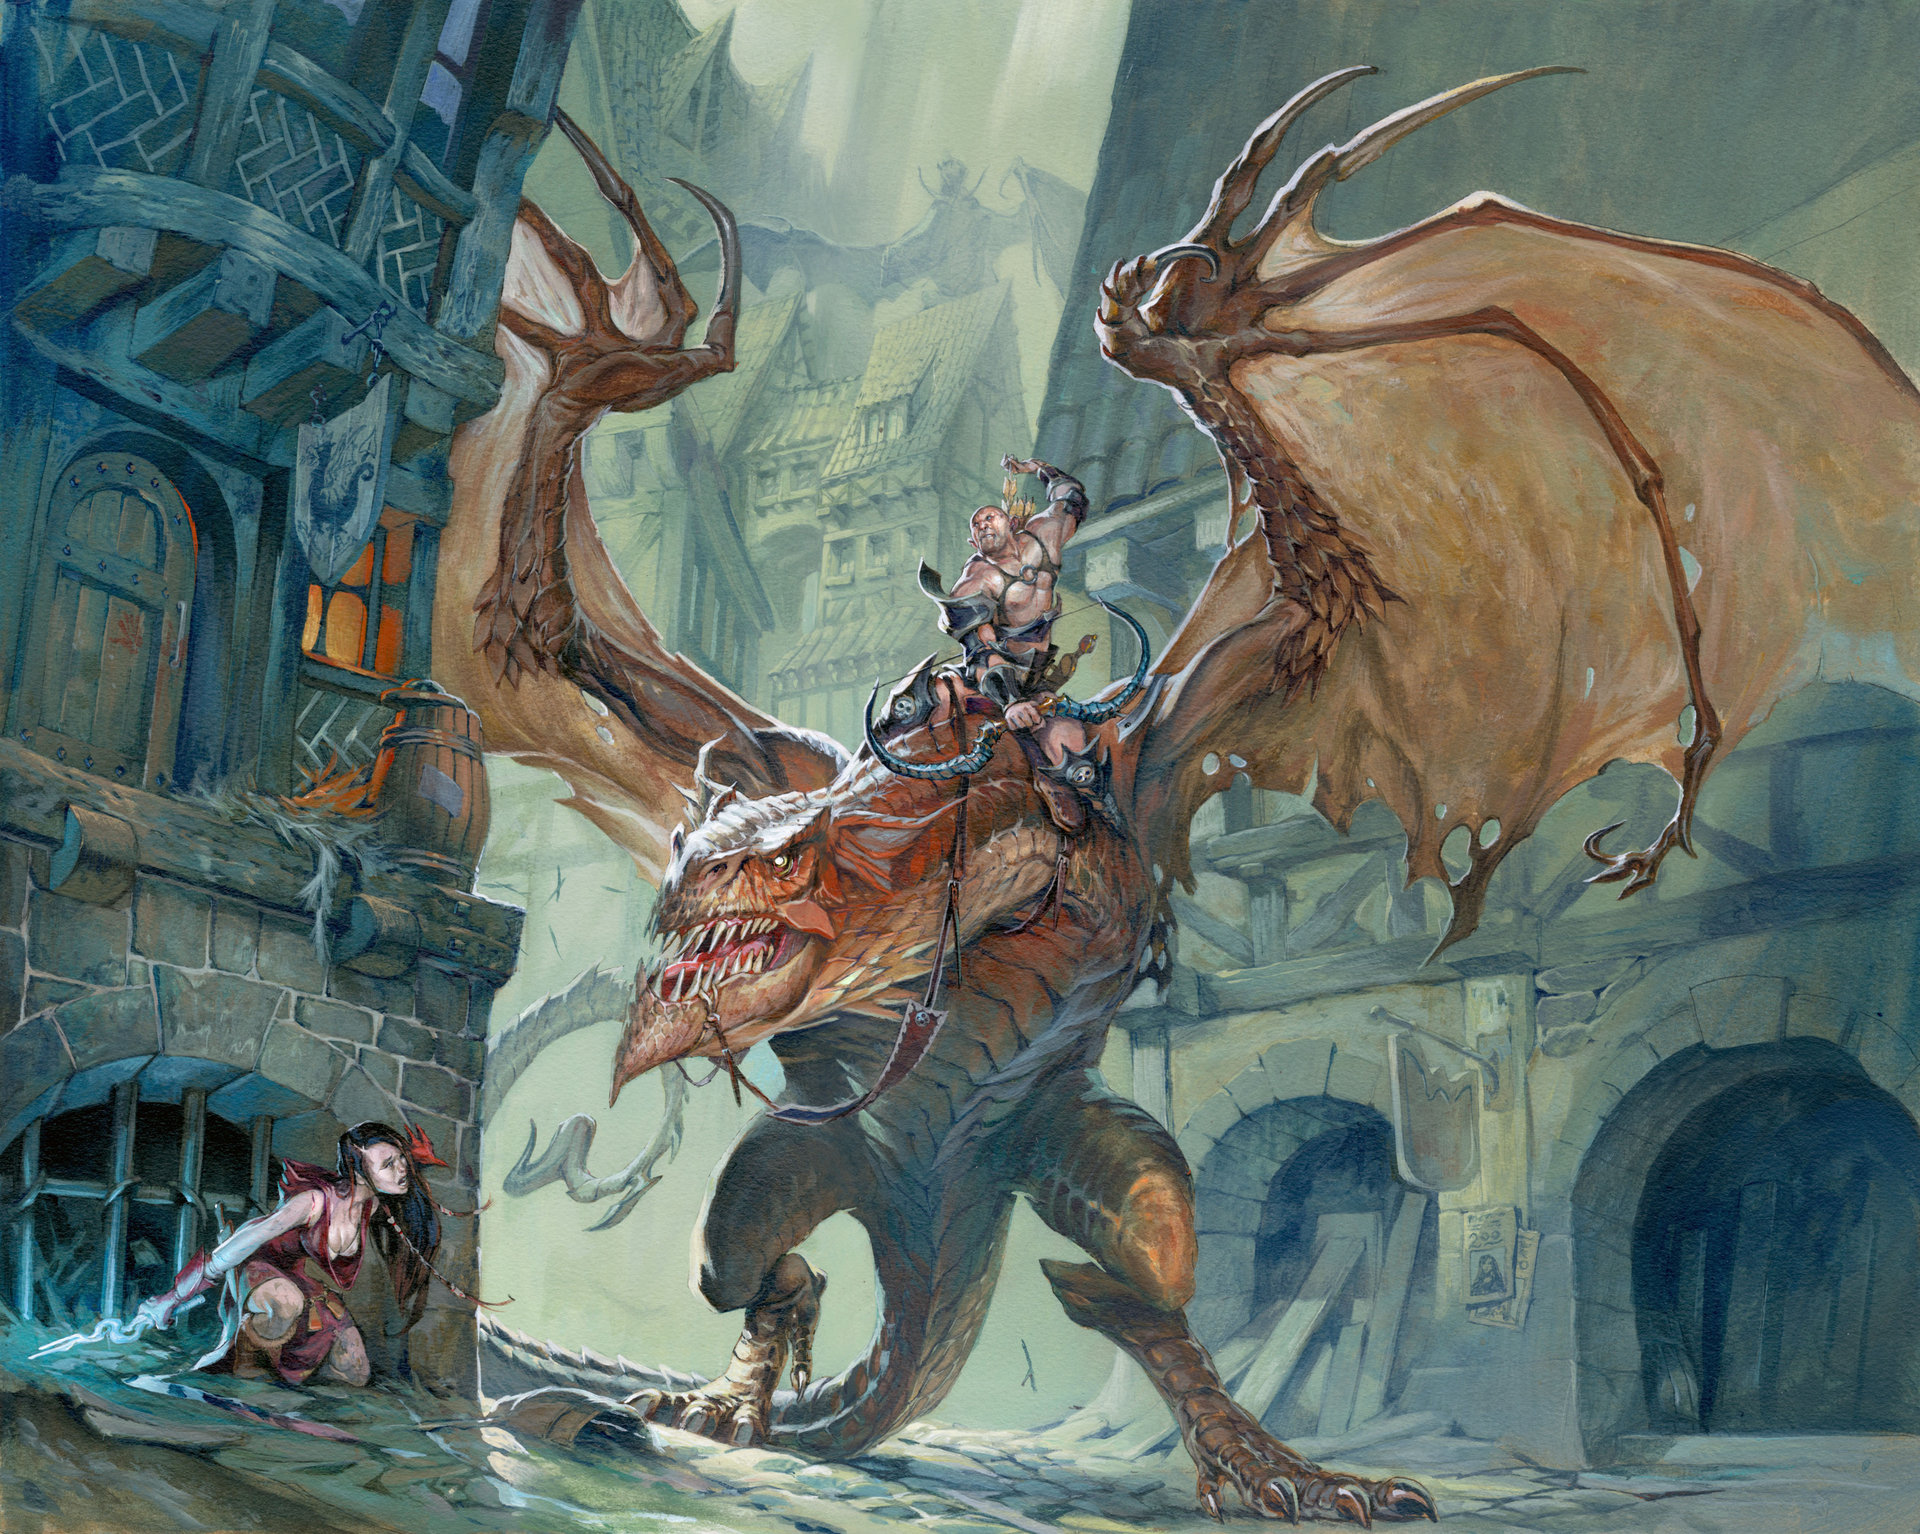 Jesper Ejsing Acrylic Painting Hunted Dragon Magazine 389, Wizards of the Coast